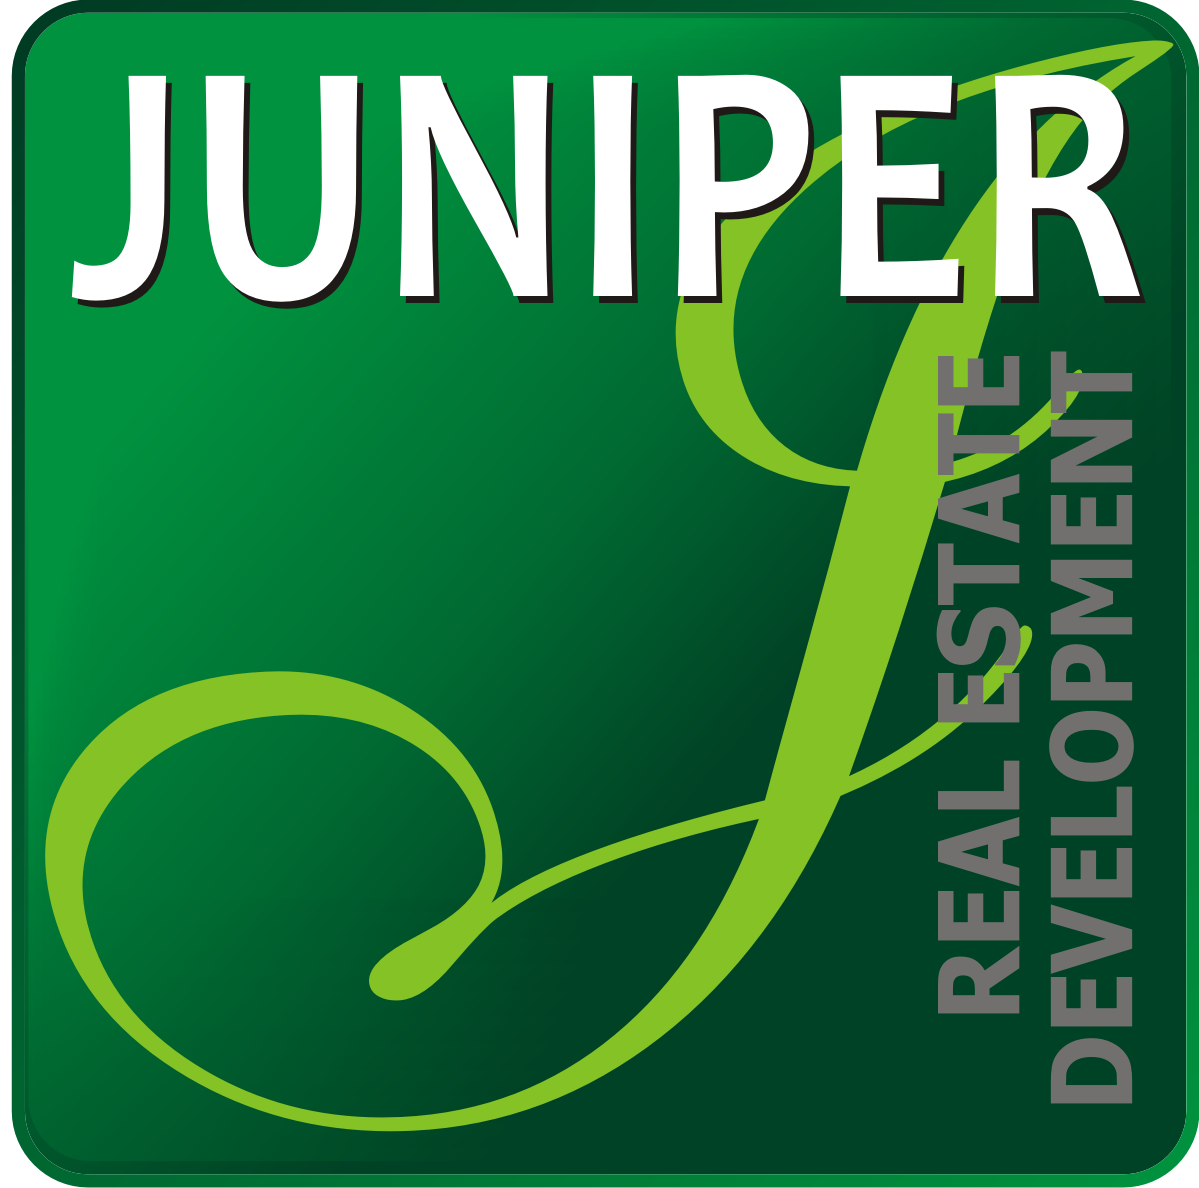 Logo Design by ElisG - Entry No. 18 in the Logo Design Contest Juniper.